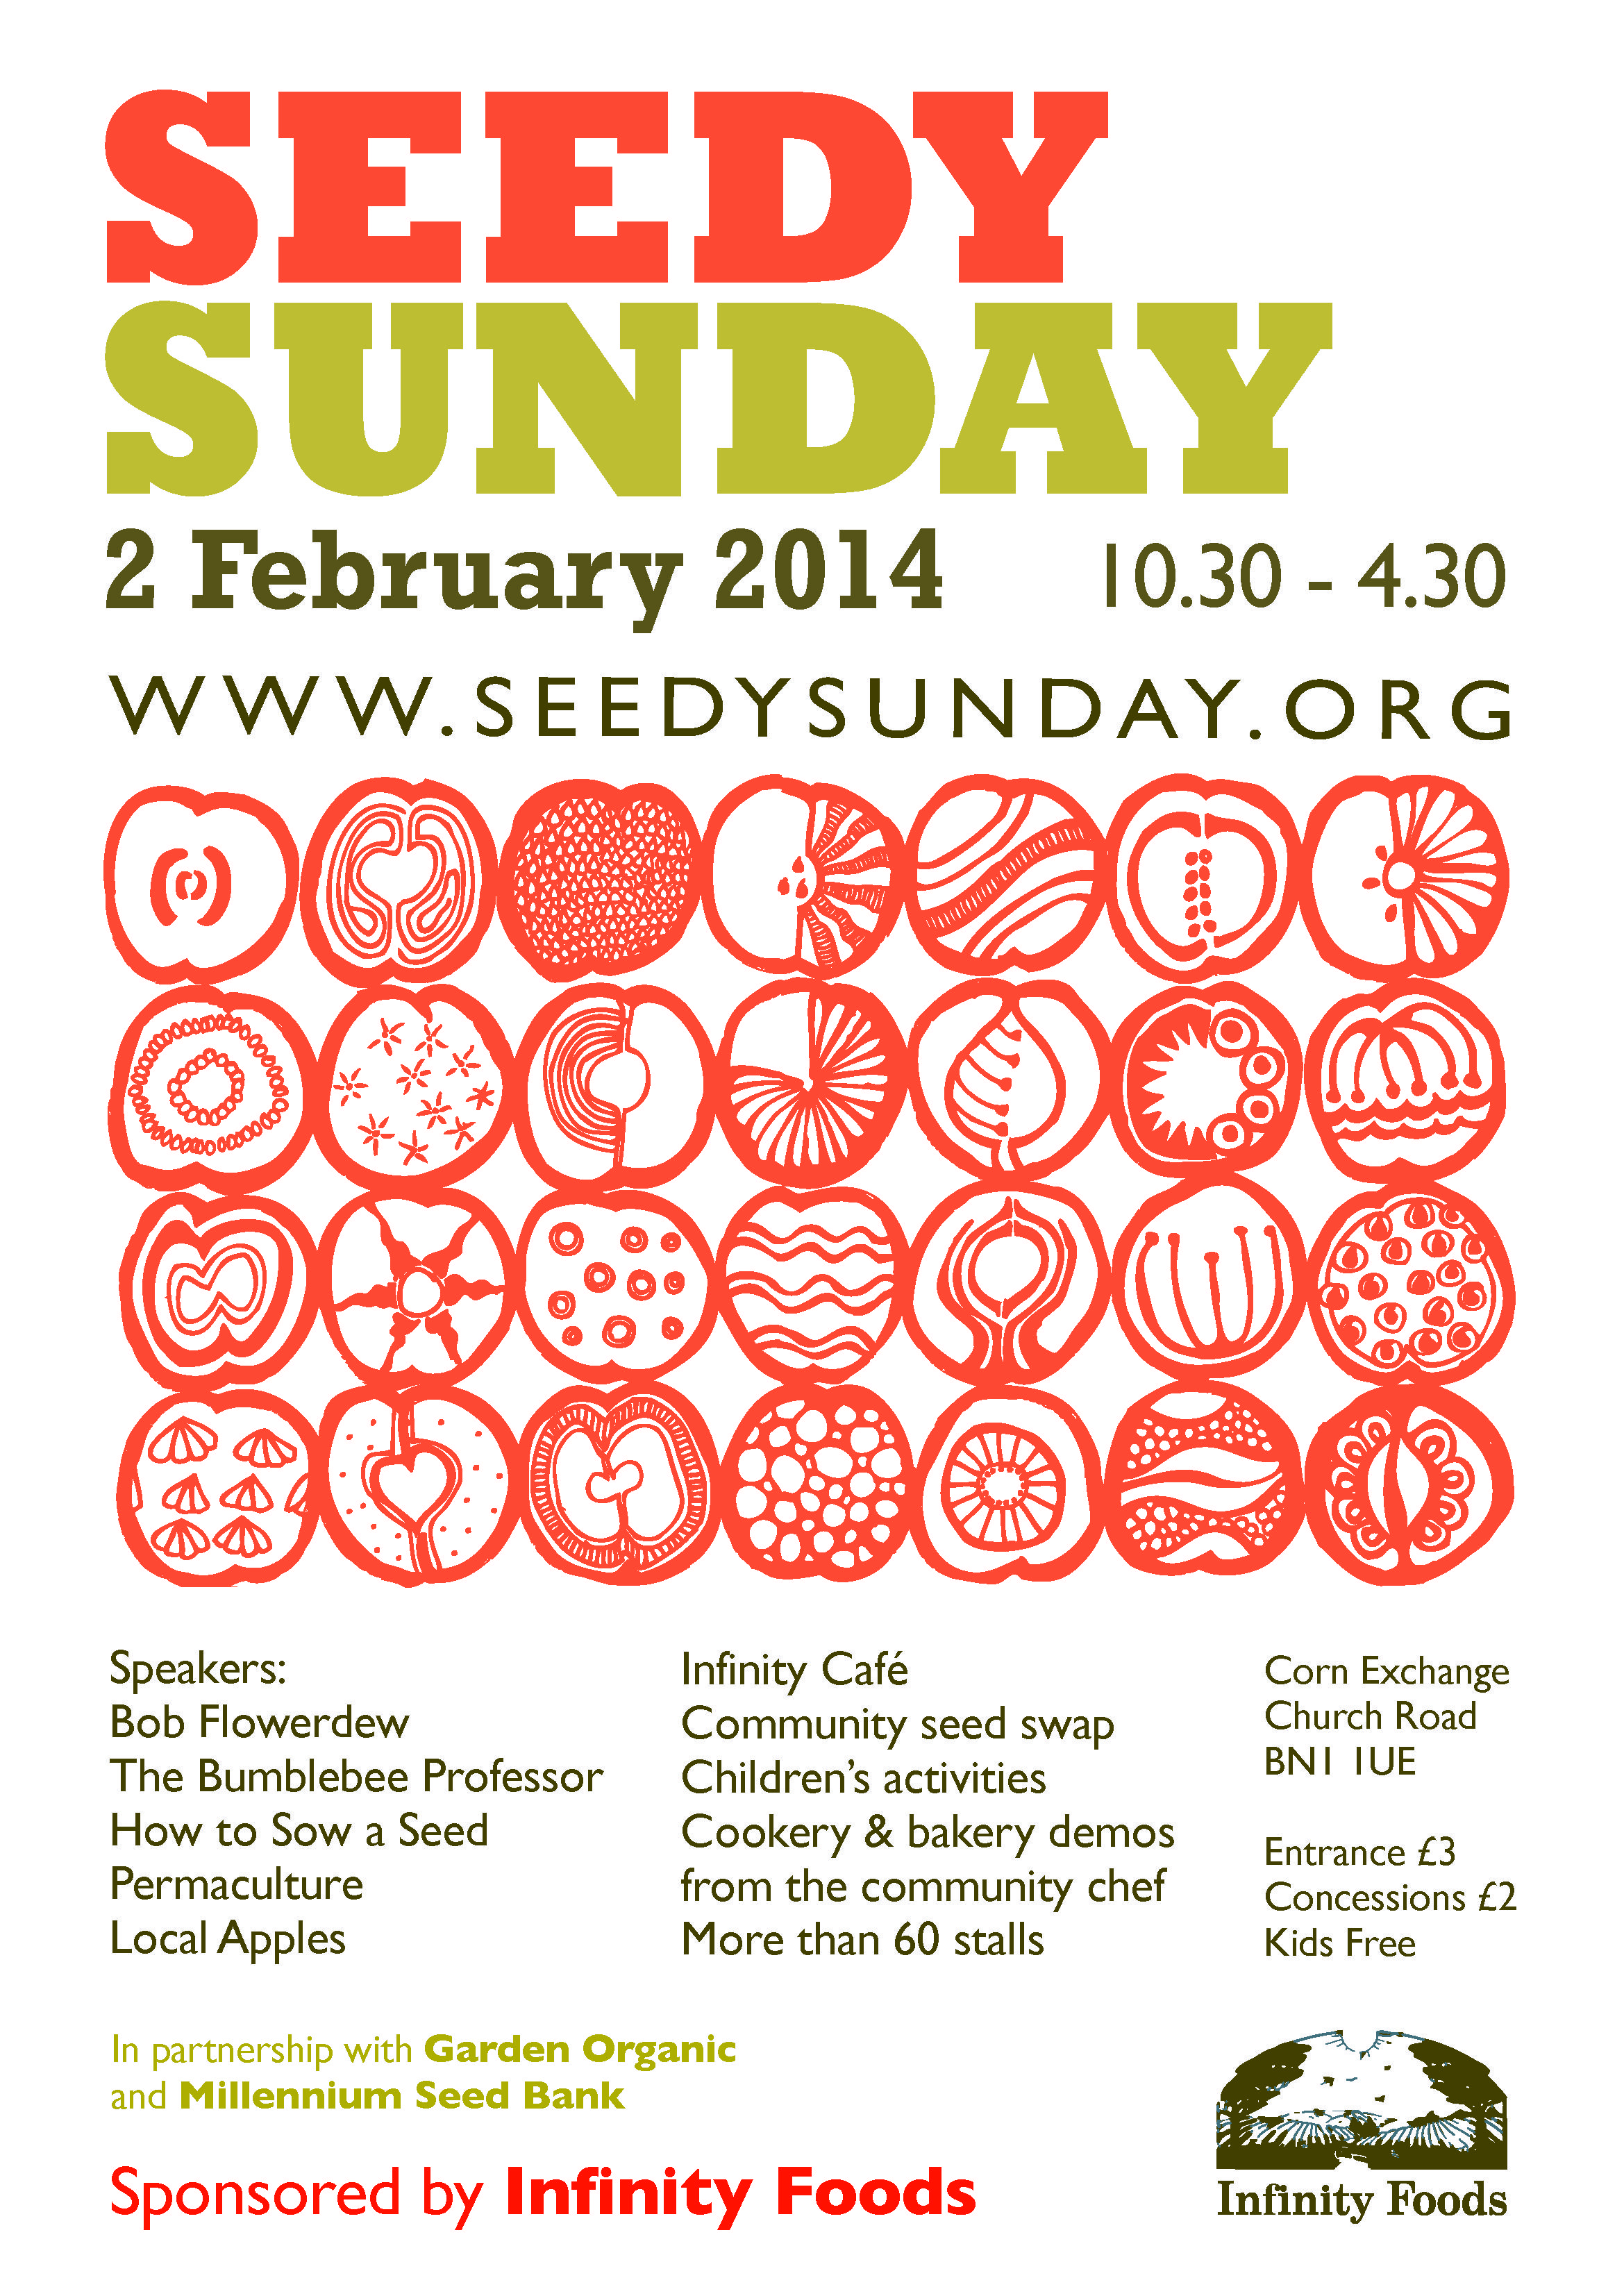 Poster and merch design by Lucid Design for Seedy Sunday Brighton- 2nd Feb 2014. great event